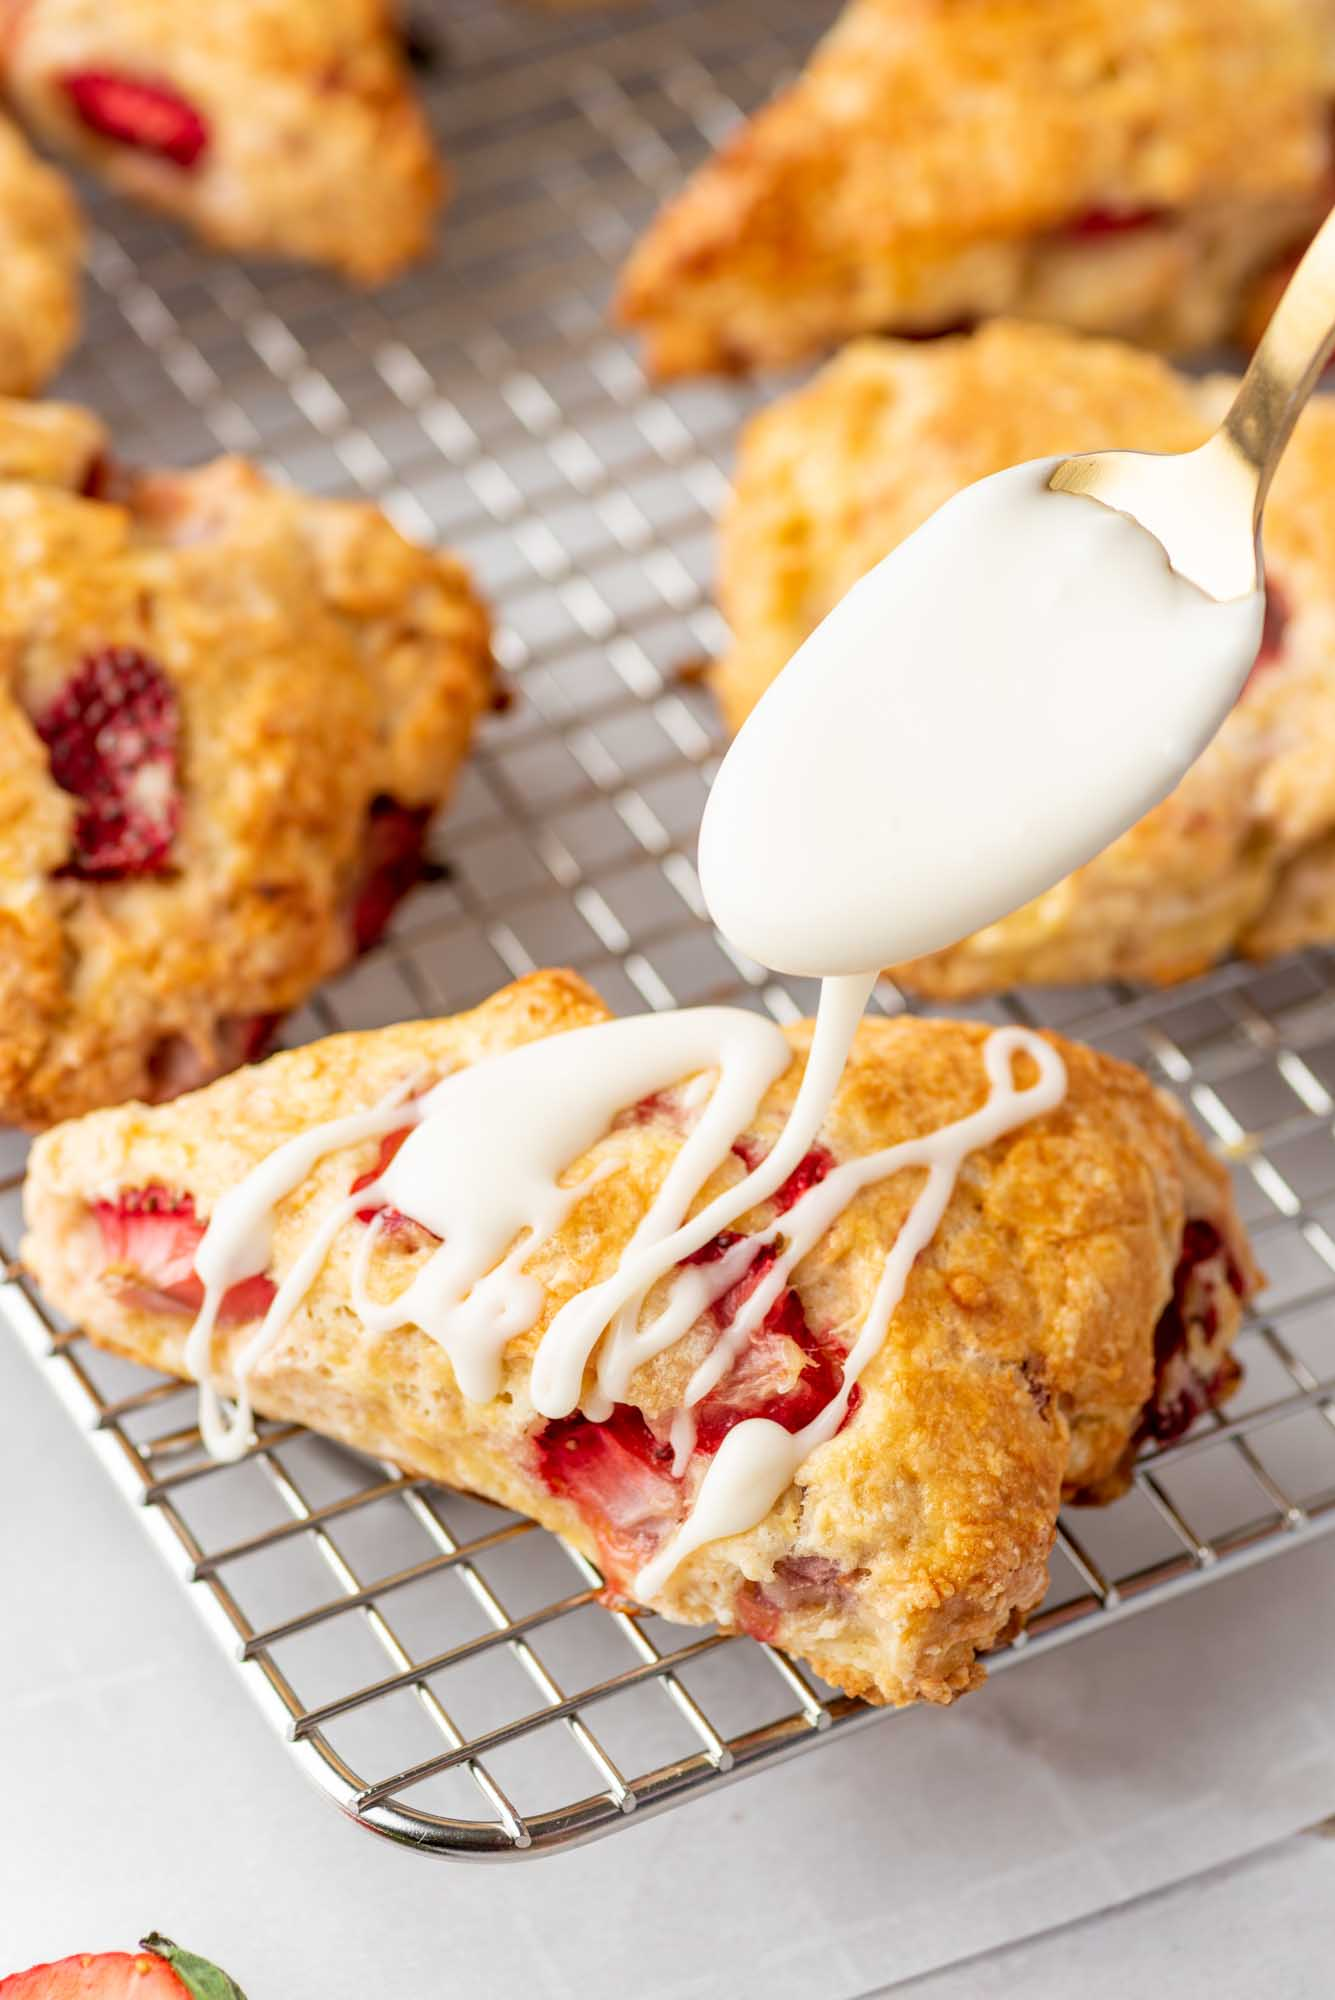 Drizzle glaze over the scones on a wire rack